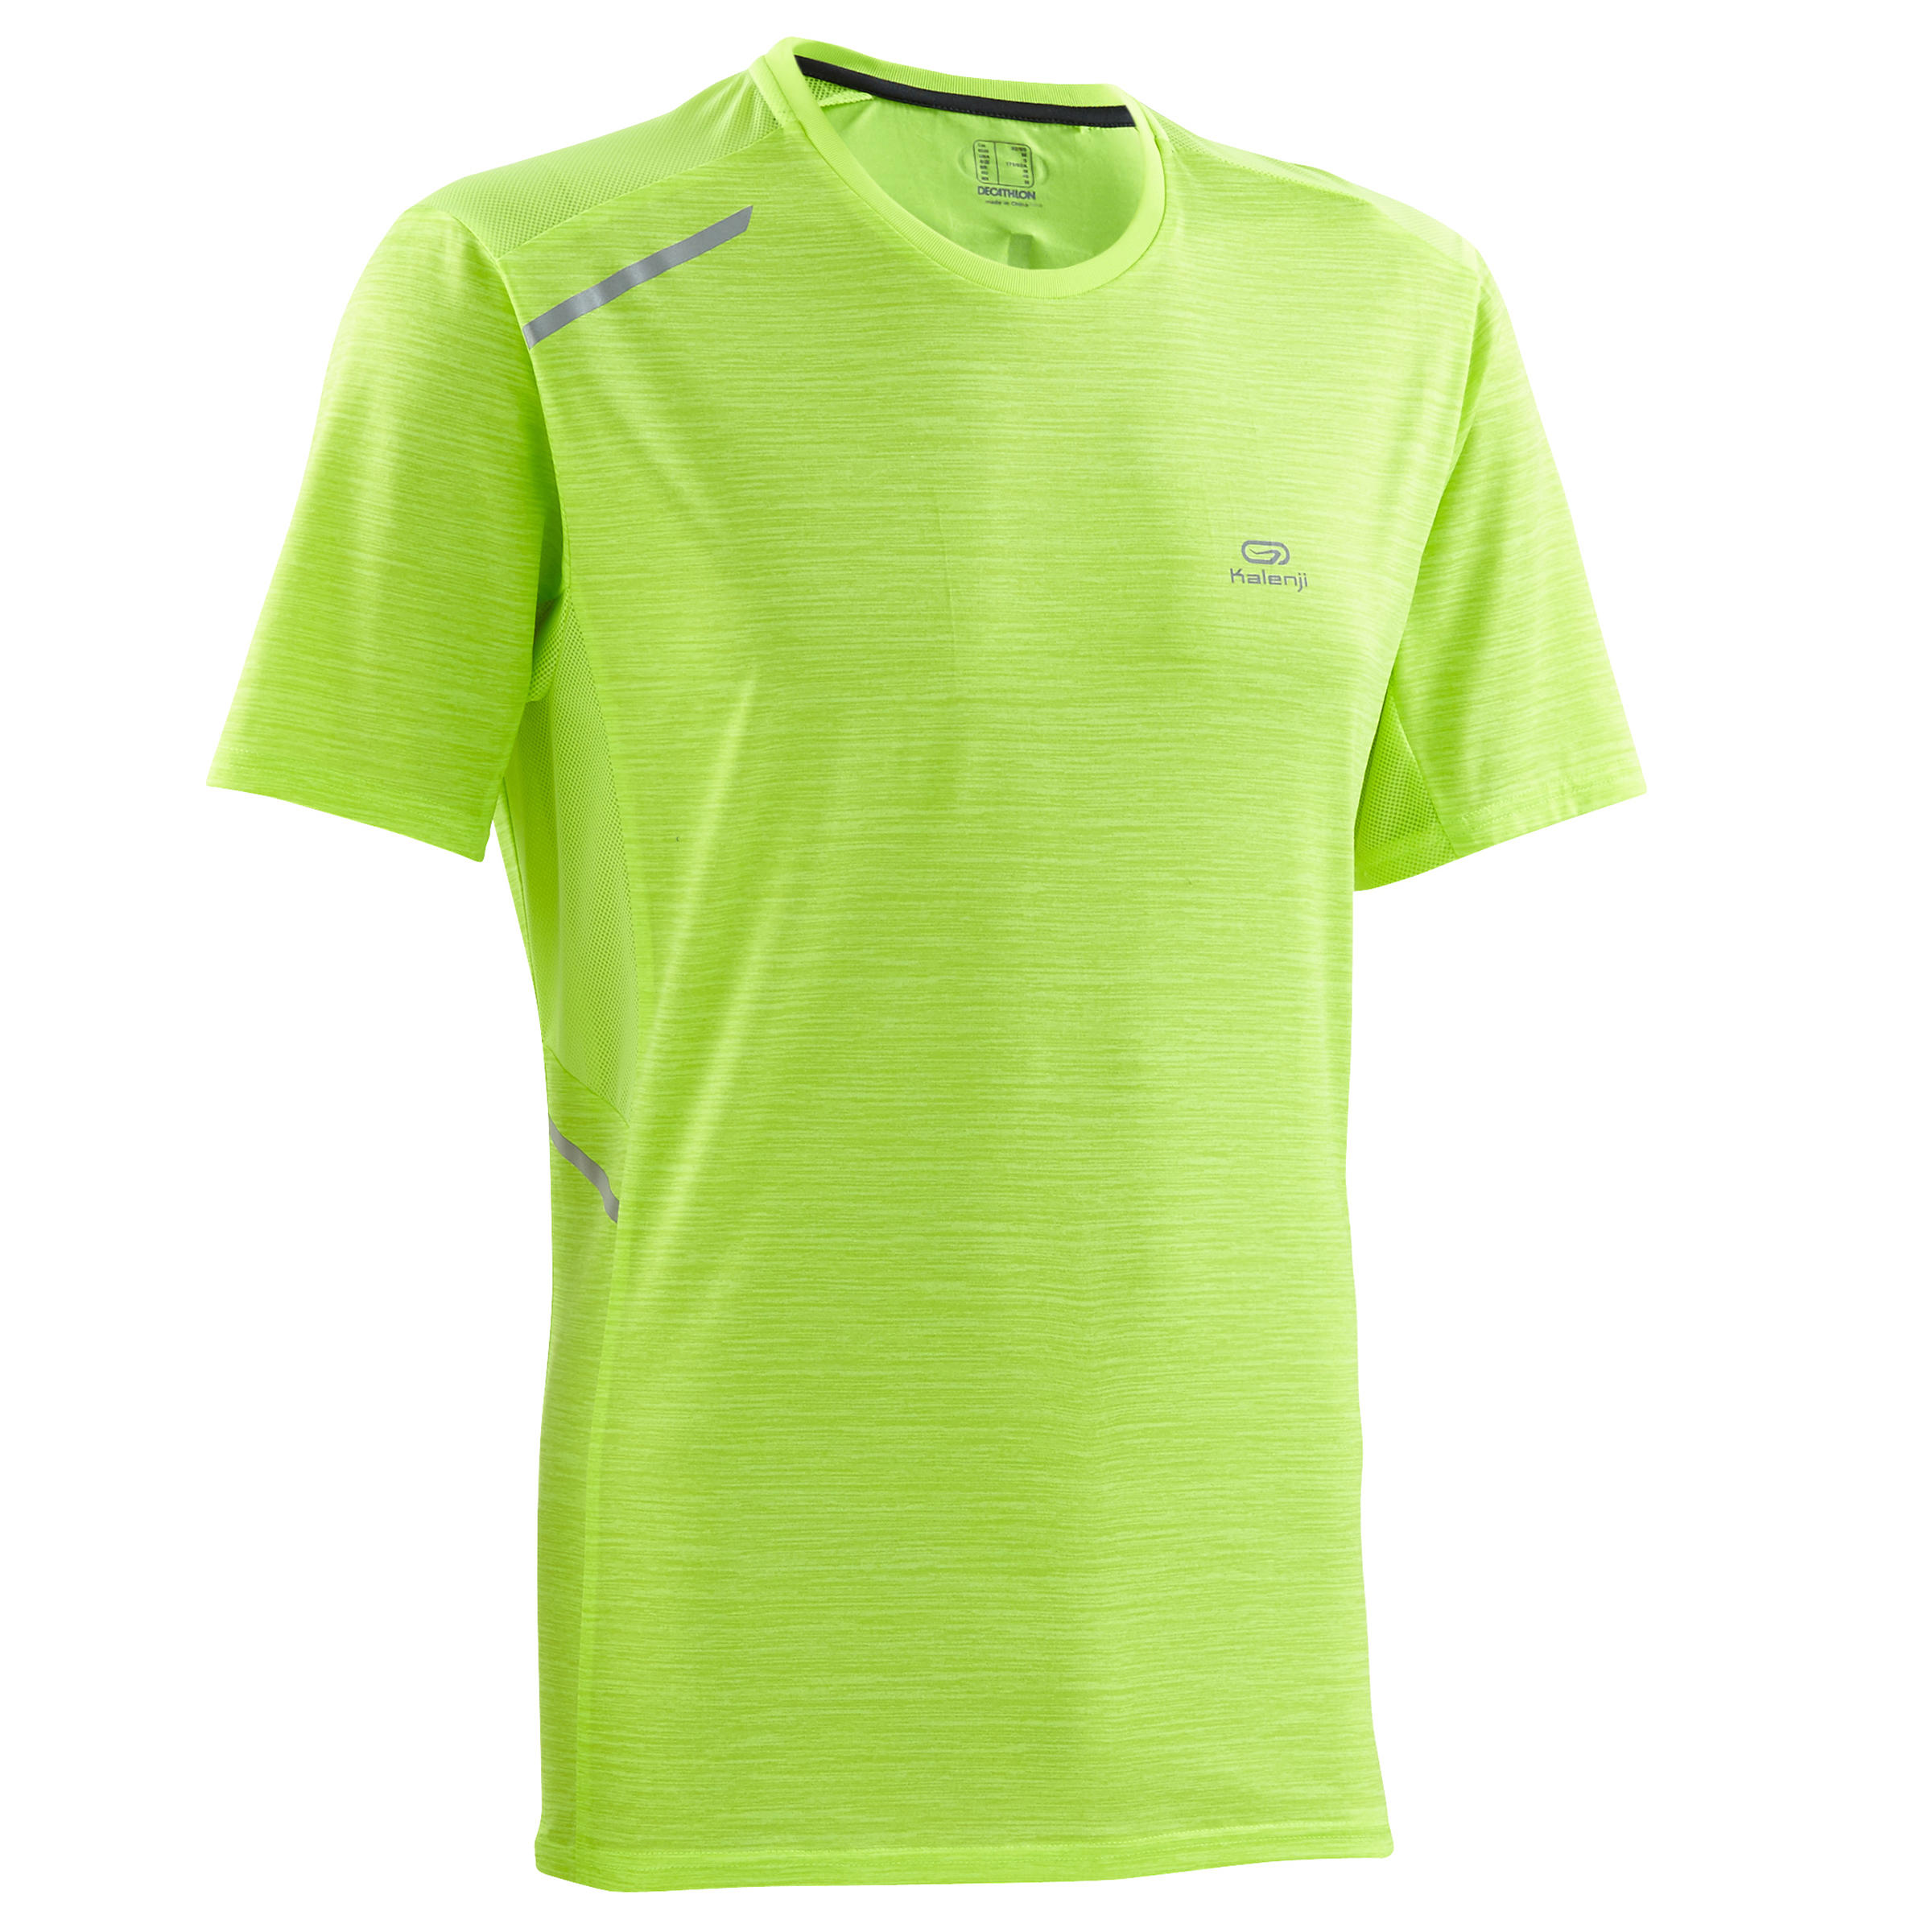 PLAYERA RUNNING HOMBRE RUN DRY + AMARILLO